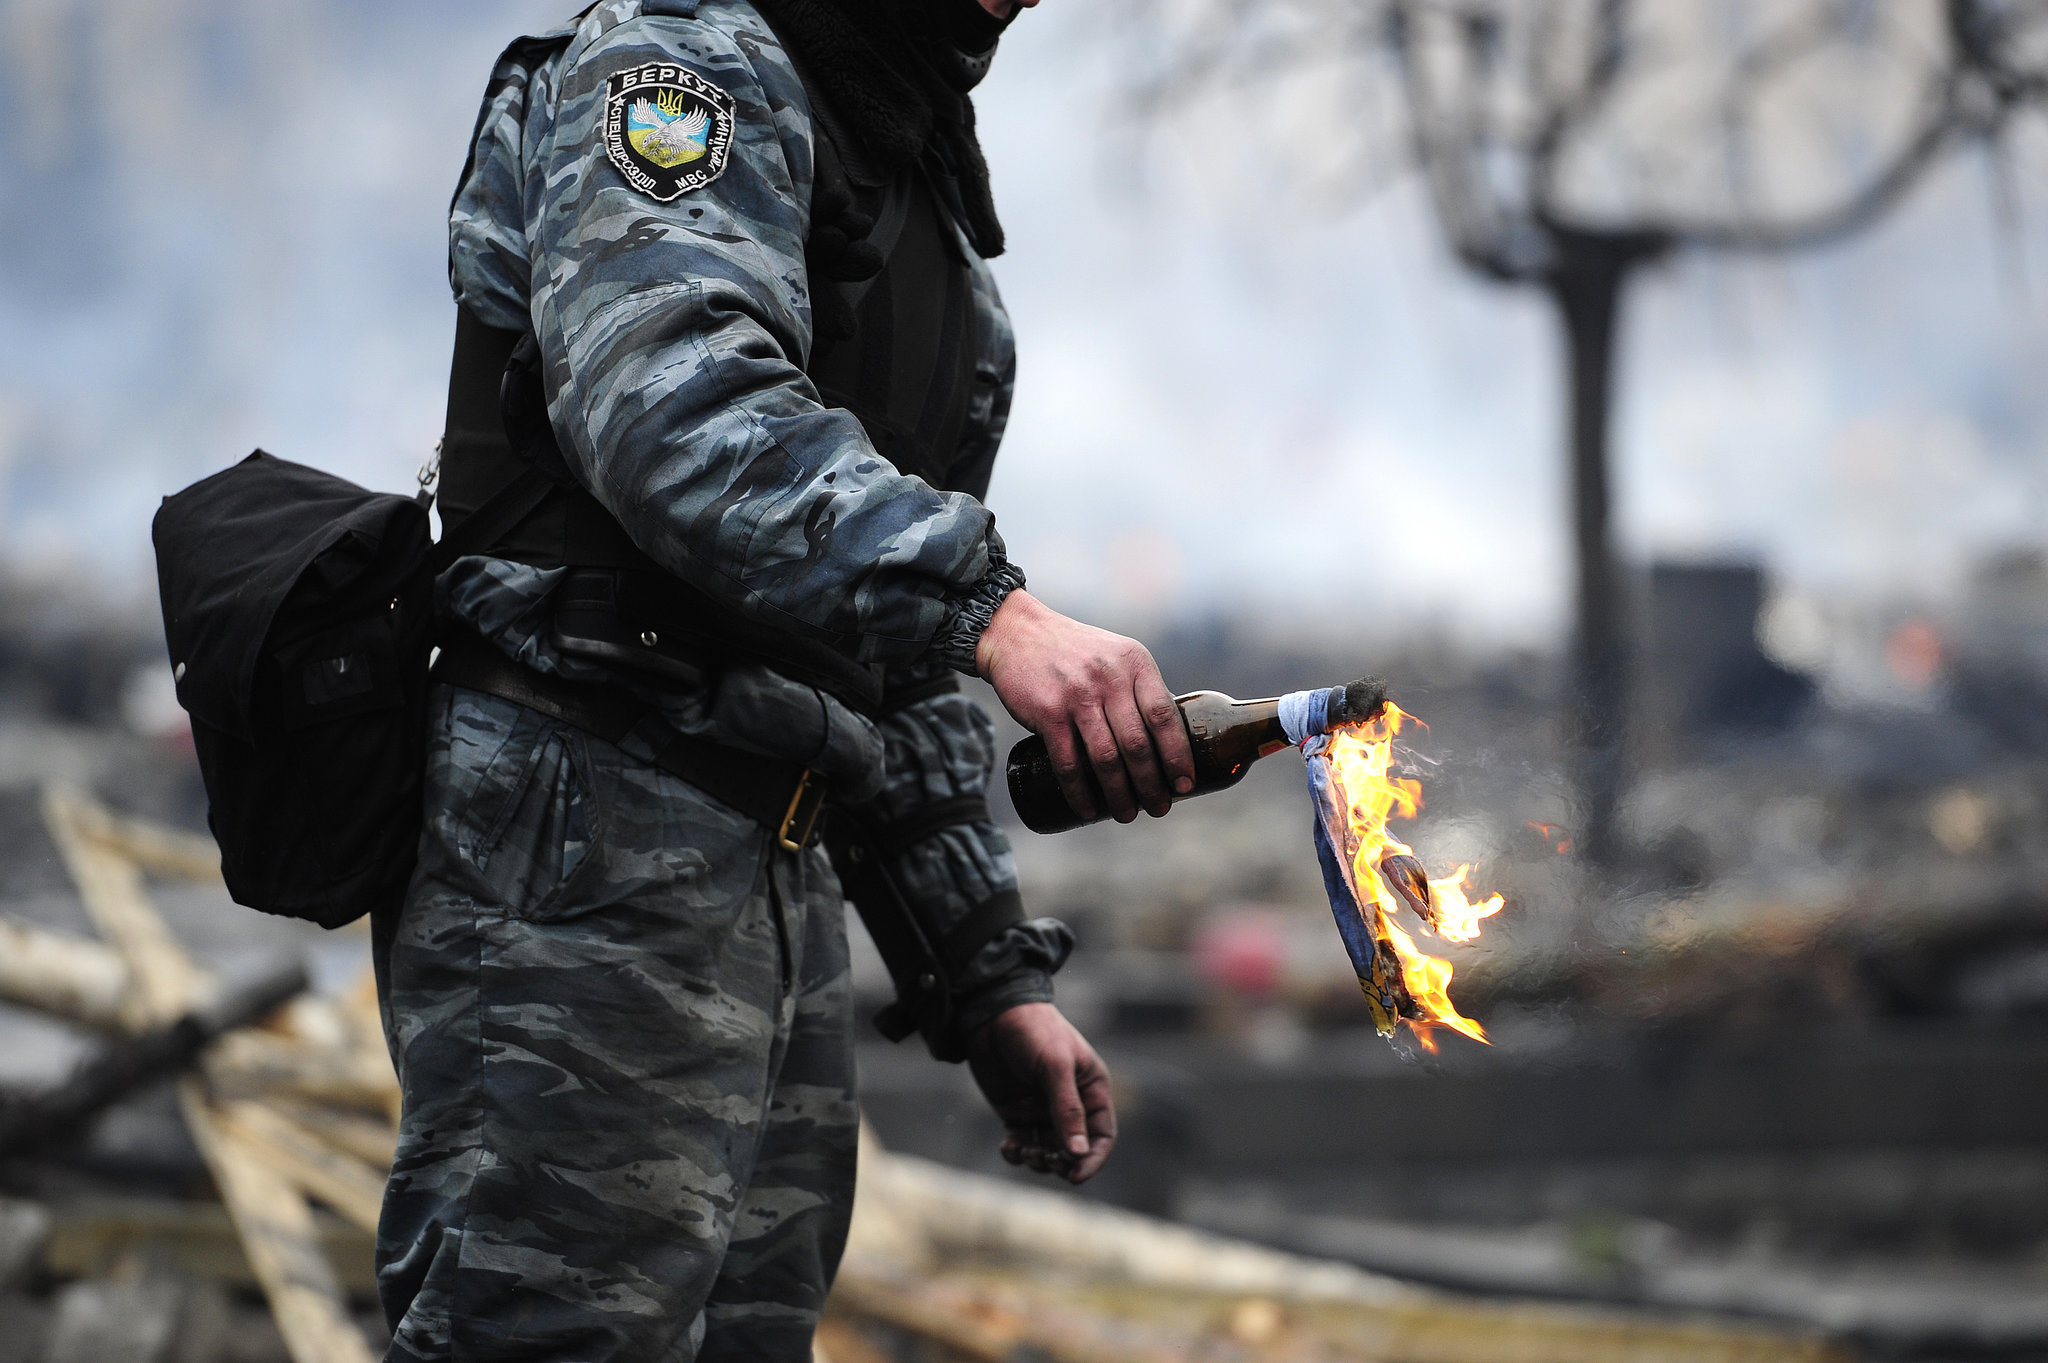 A man prepared to throw a flaming bottle.